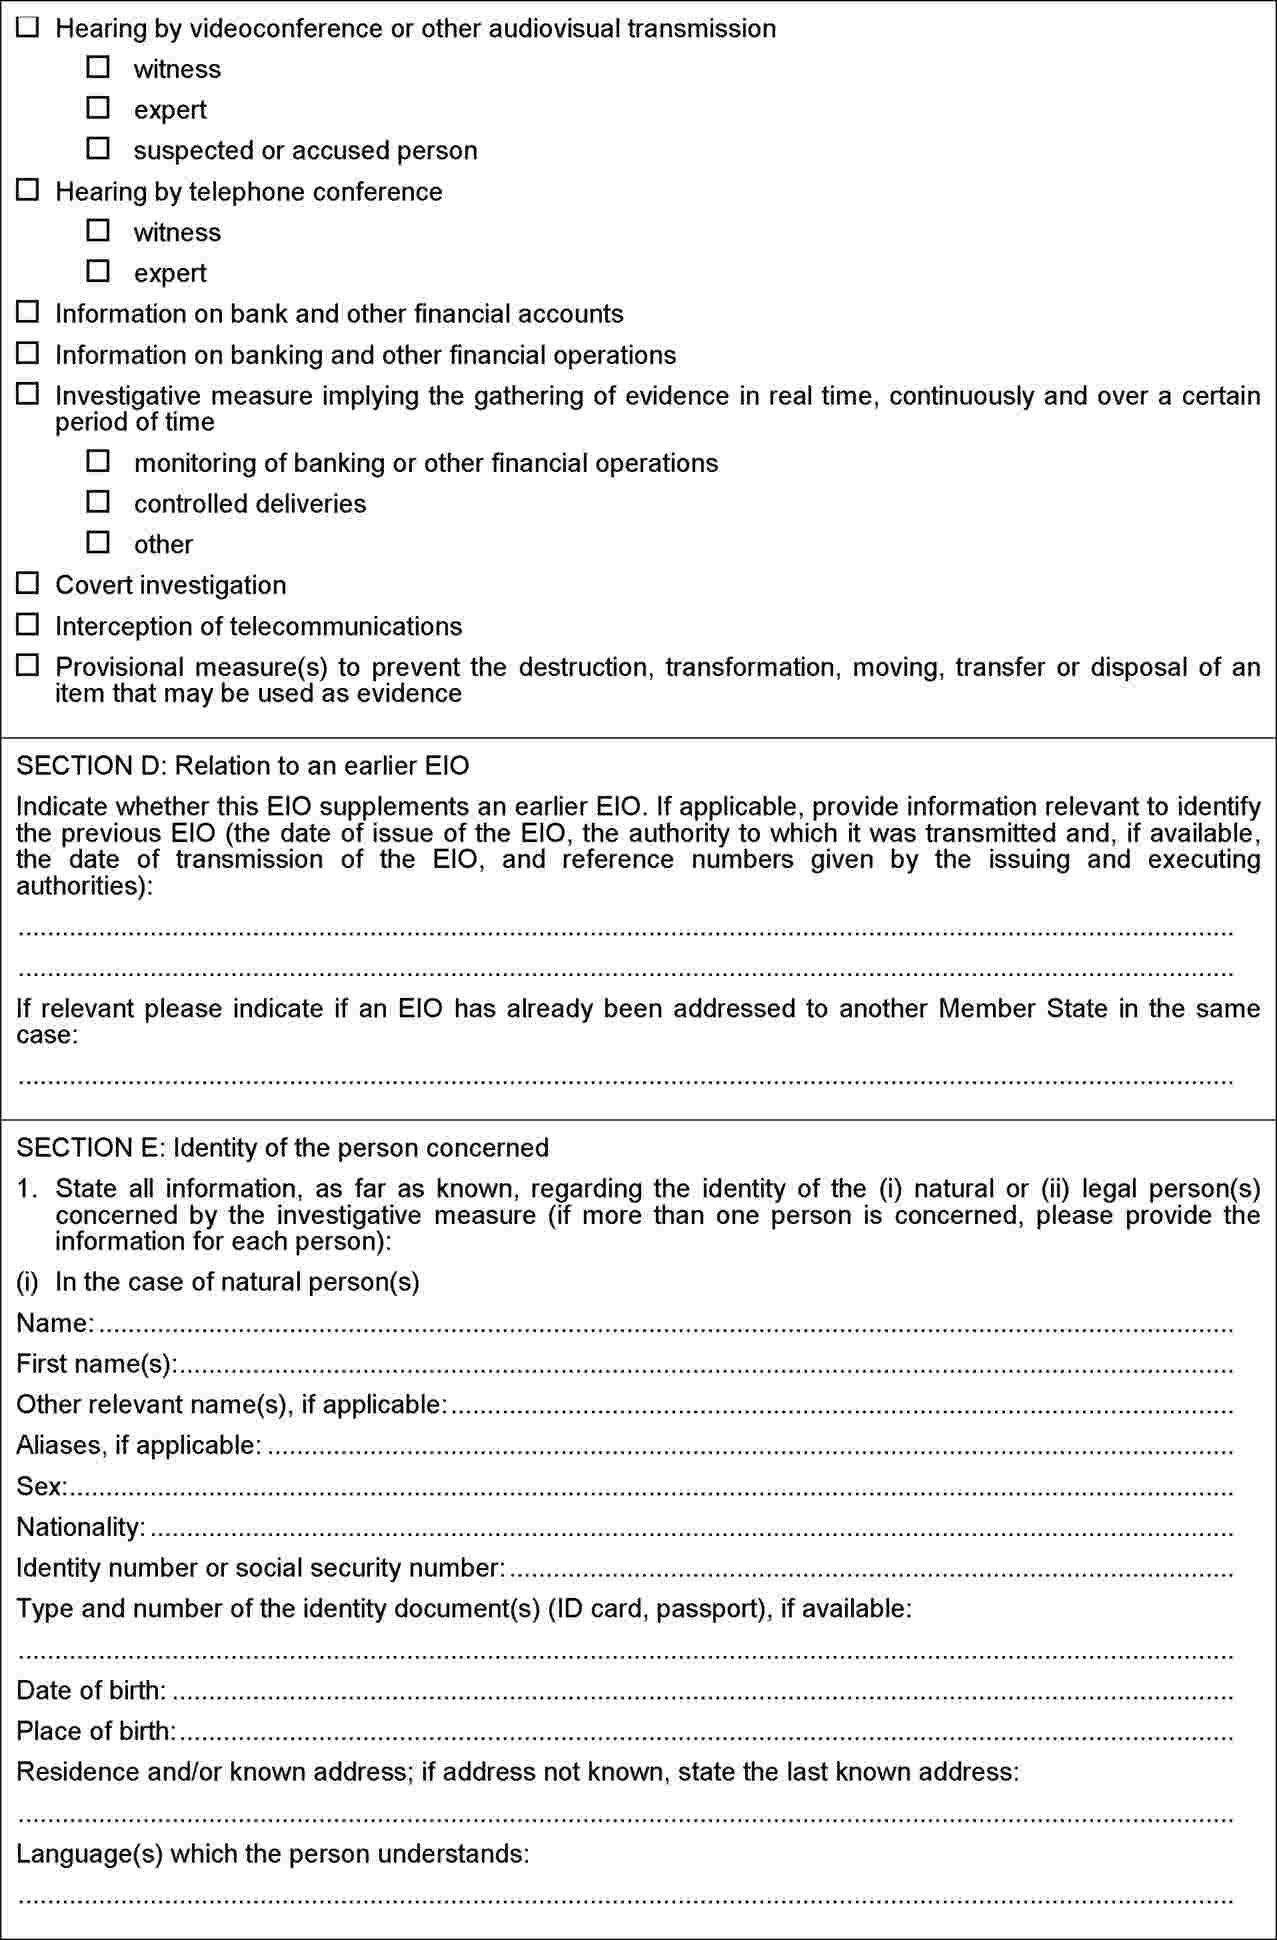 medium resolution of Apa Citation Worksheet Answer Key   Printable Worksheets and Activities for  Teachers